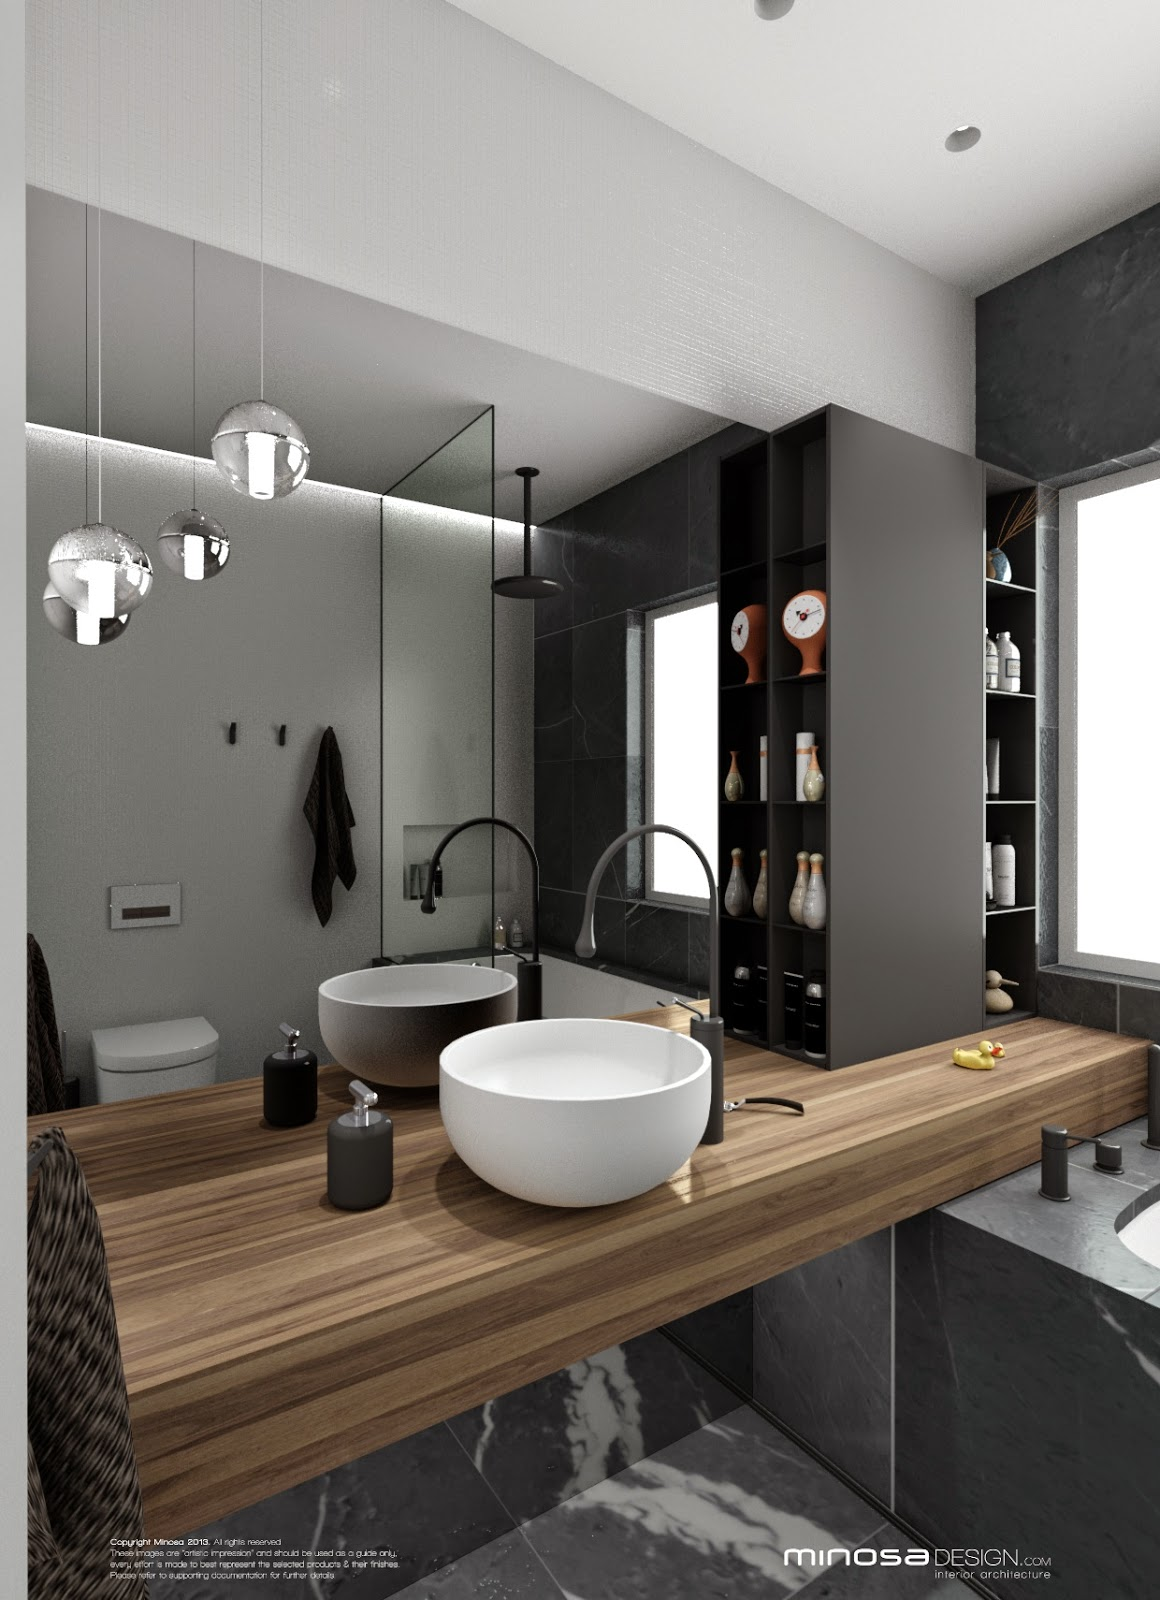 Minosa bathroom design small space feels large for Small restroom design